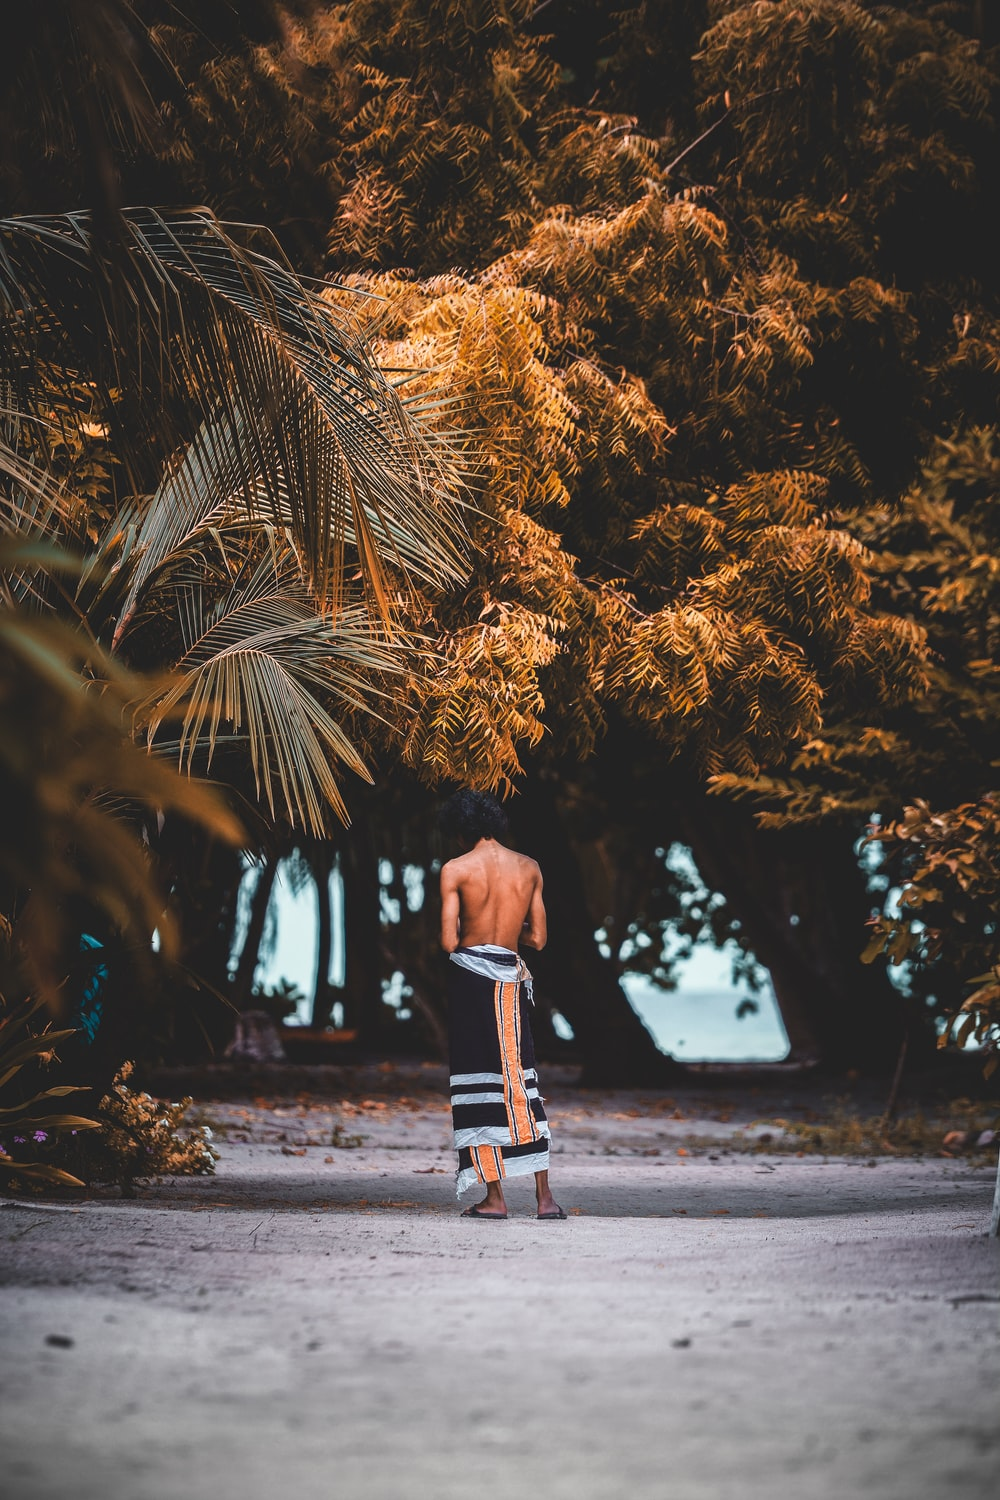 topless man with scarf wrapped around his body stands near trees